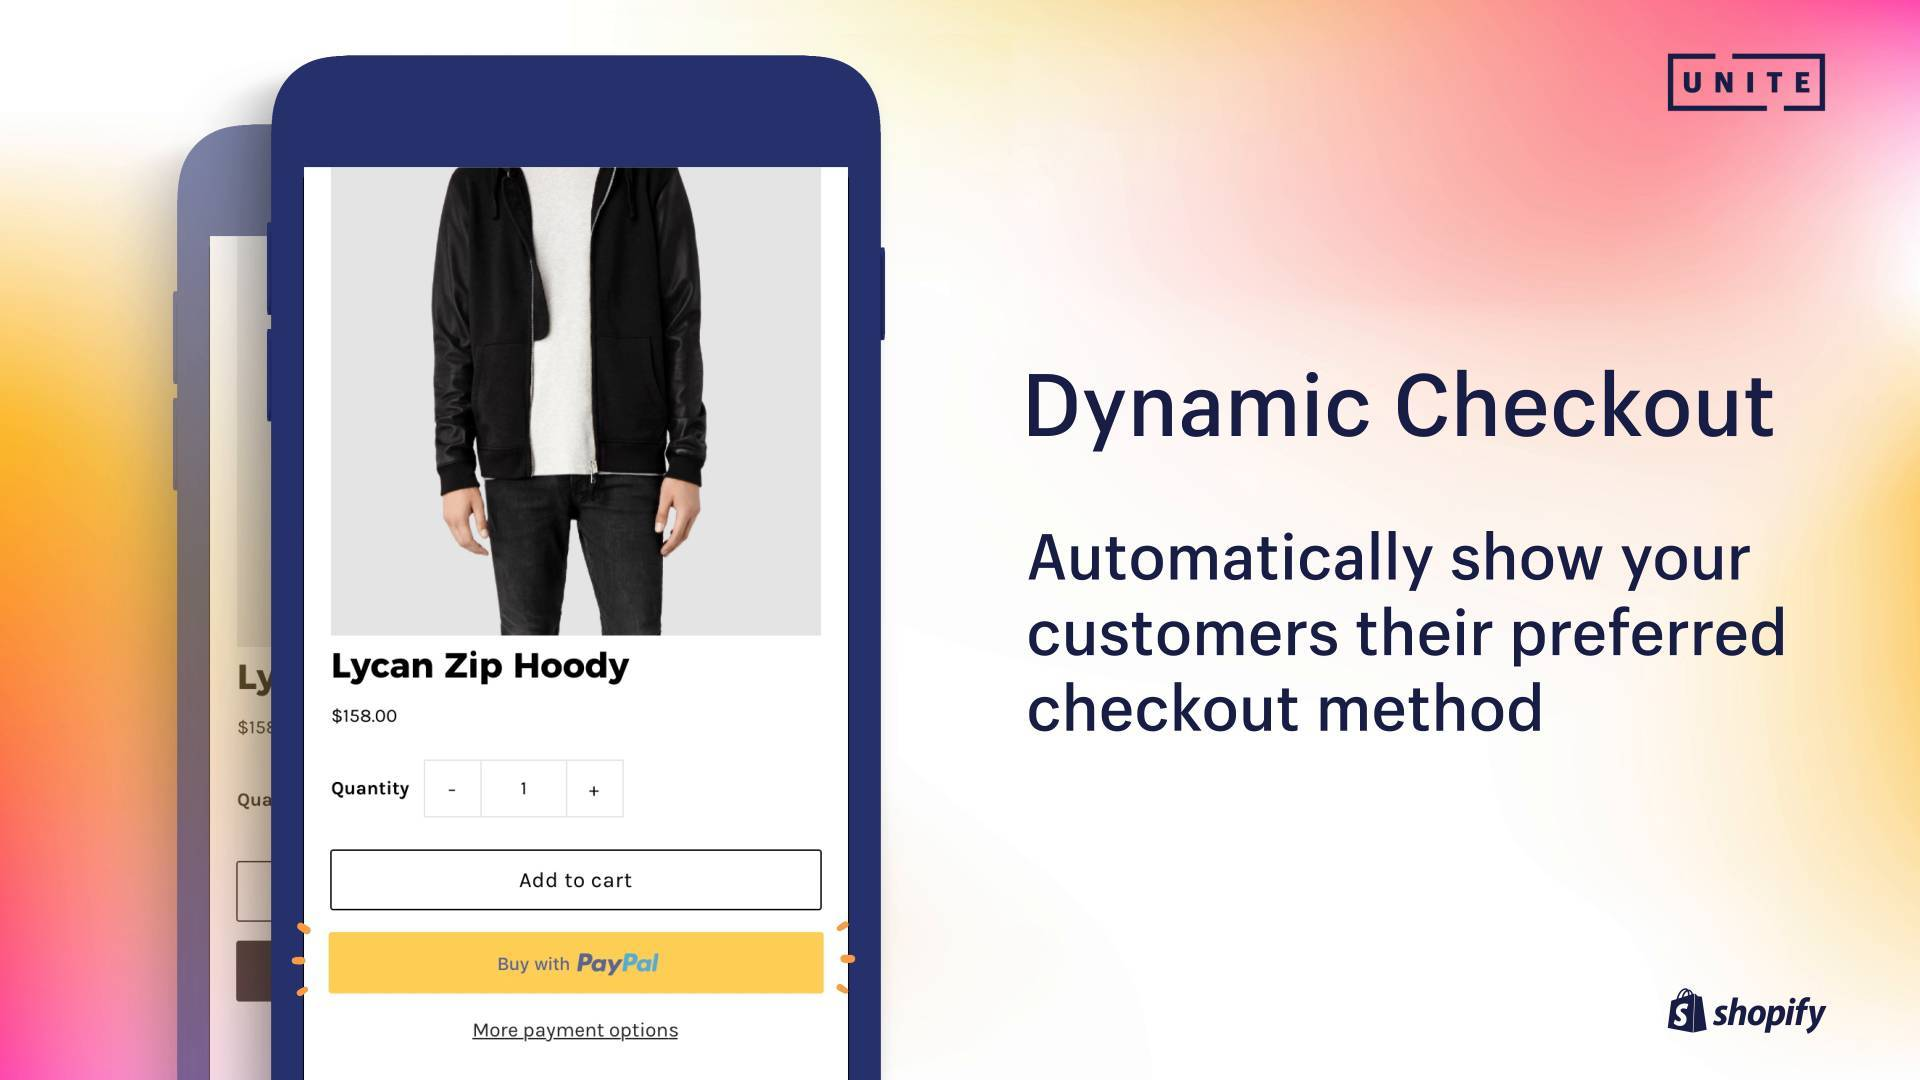 Speed Up The Checkout Process with Dynamic Checkout